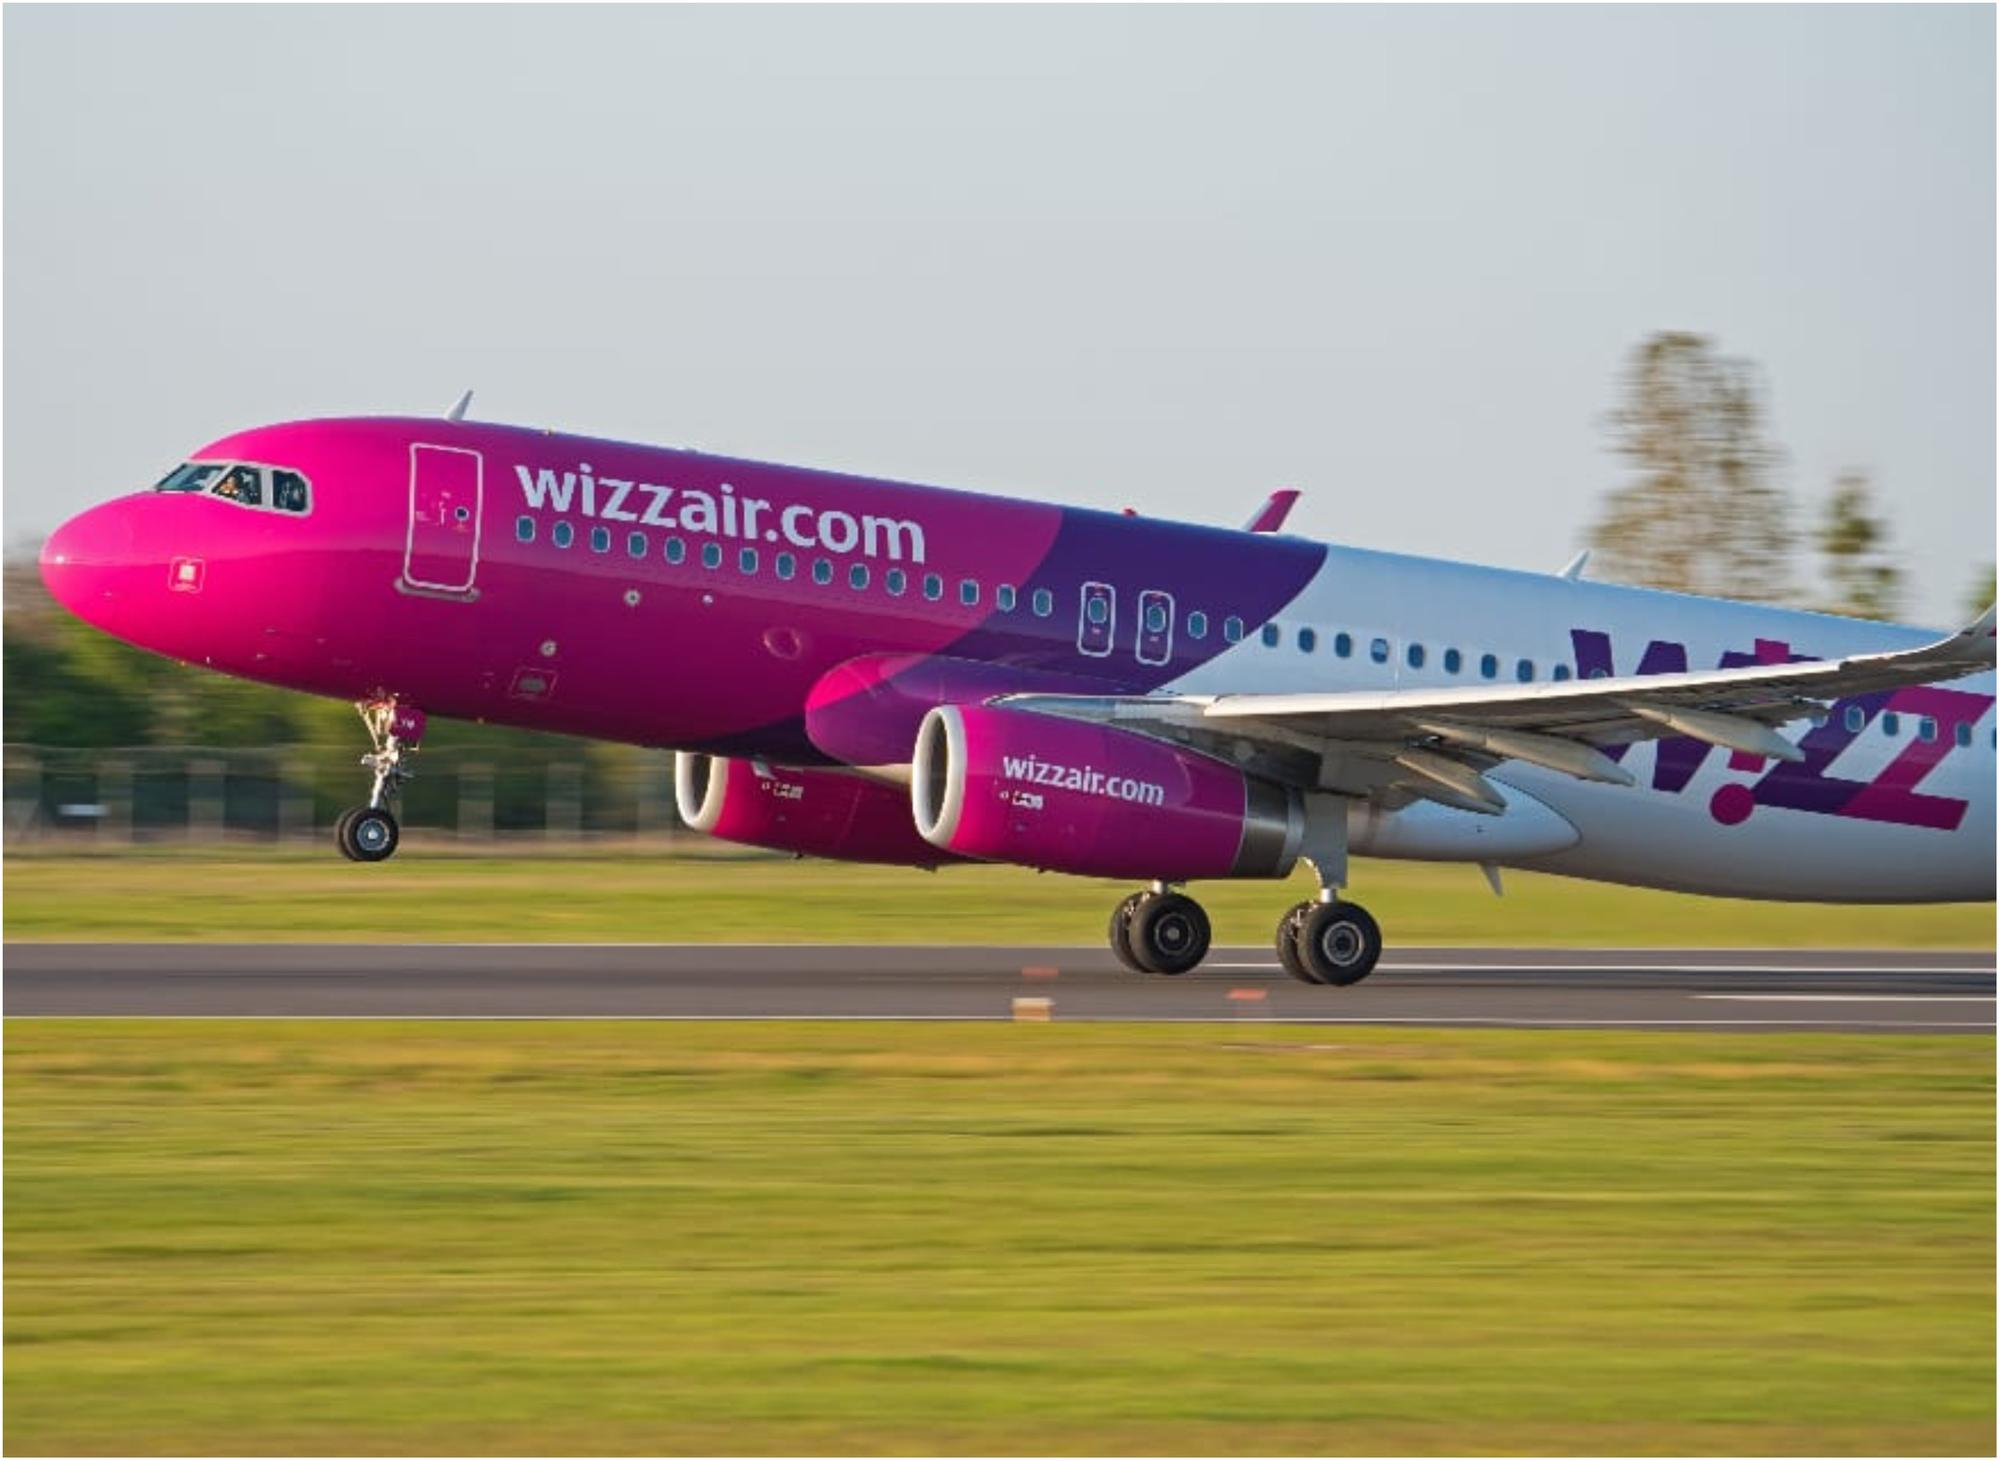 Wizz Air Announces Six New Destinations From Doncaster Sheffield Airport Doncaster Free Press